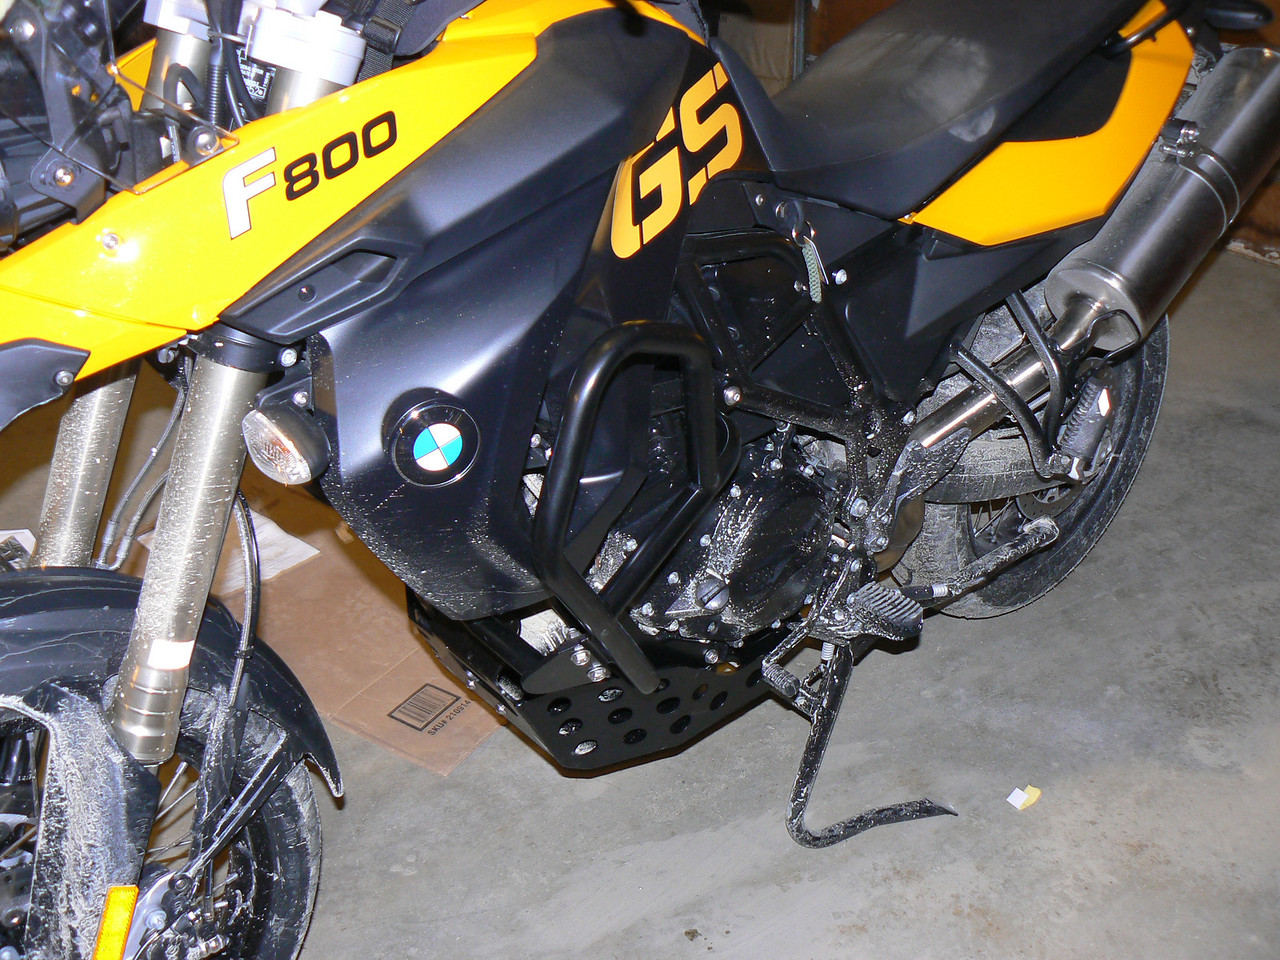 AdventureSpec engine bars, skid plate, and rear rack installed